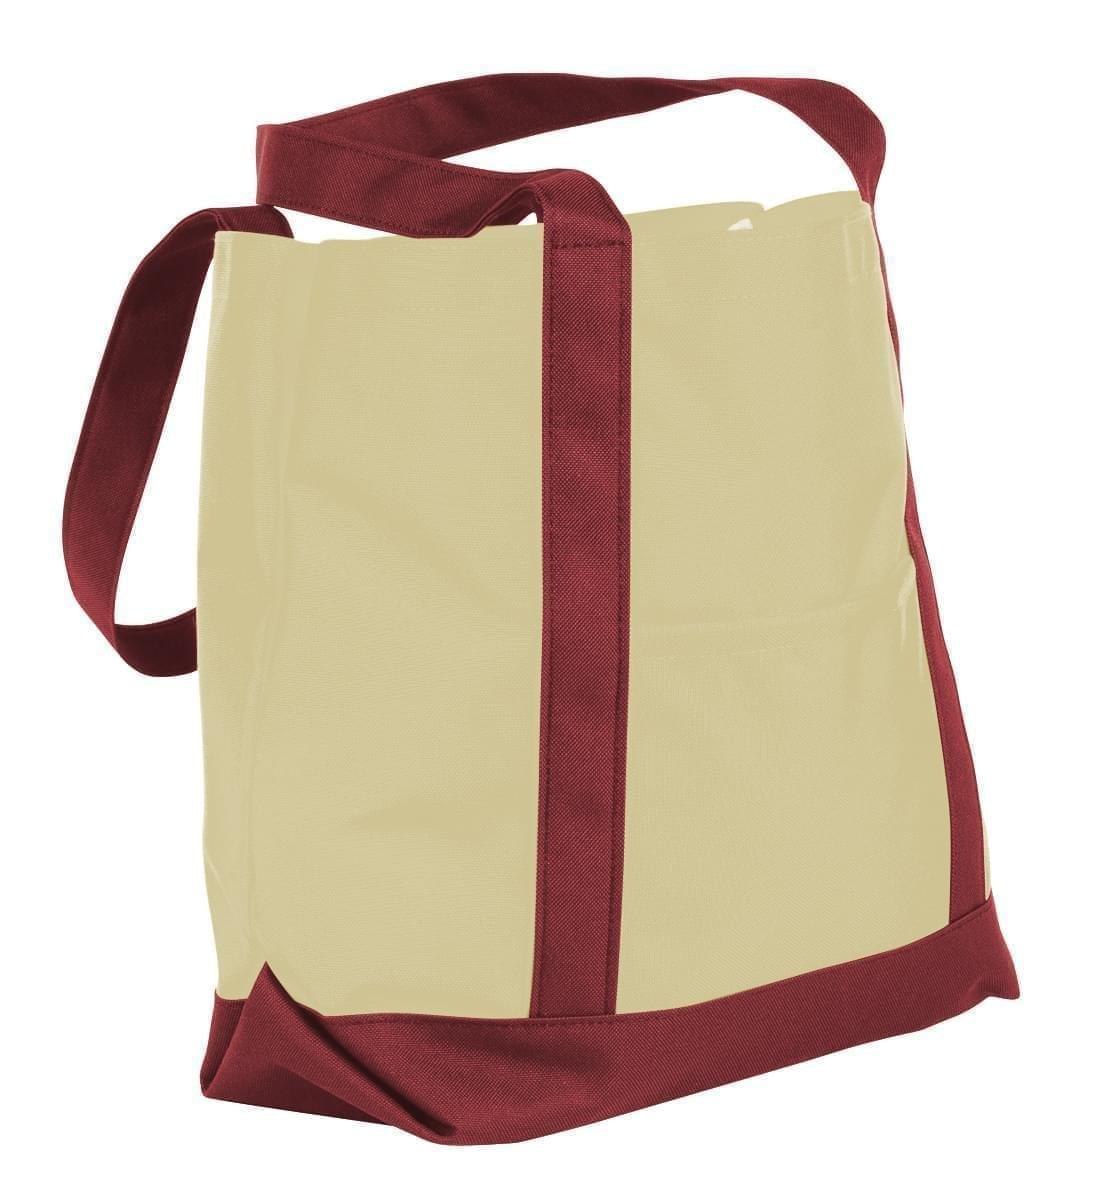 USA Made Canvas Fashion Tote Bags, Natural-Burgundy, XAACL1UAKE